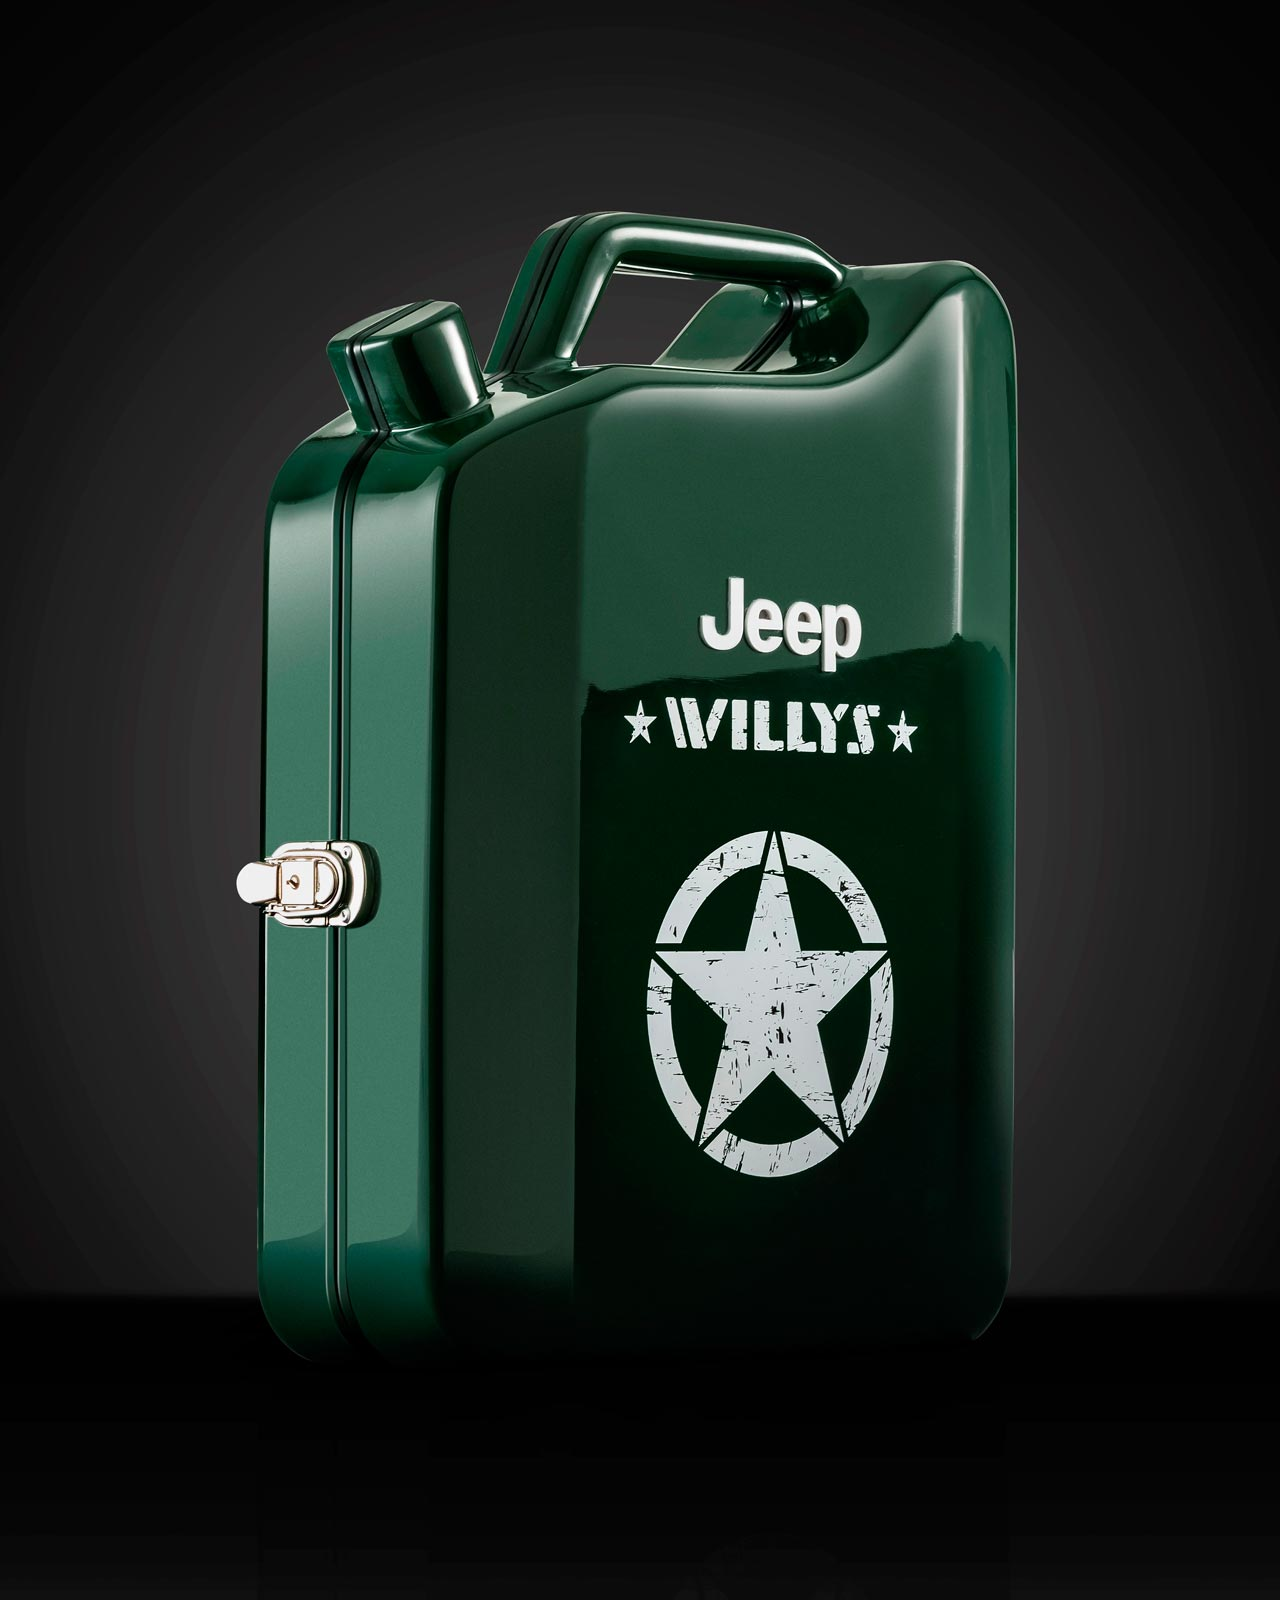 Kit Jeep Gear Renegade Willys